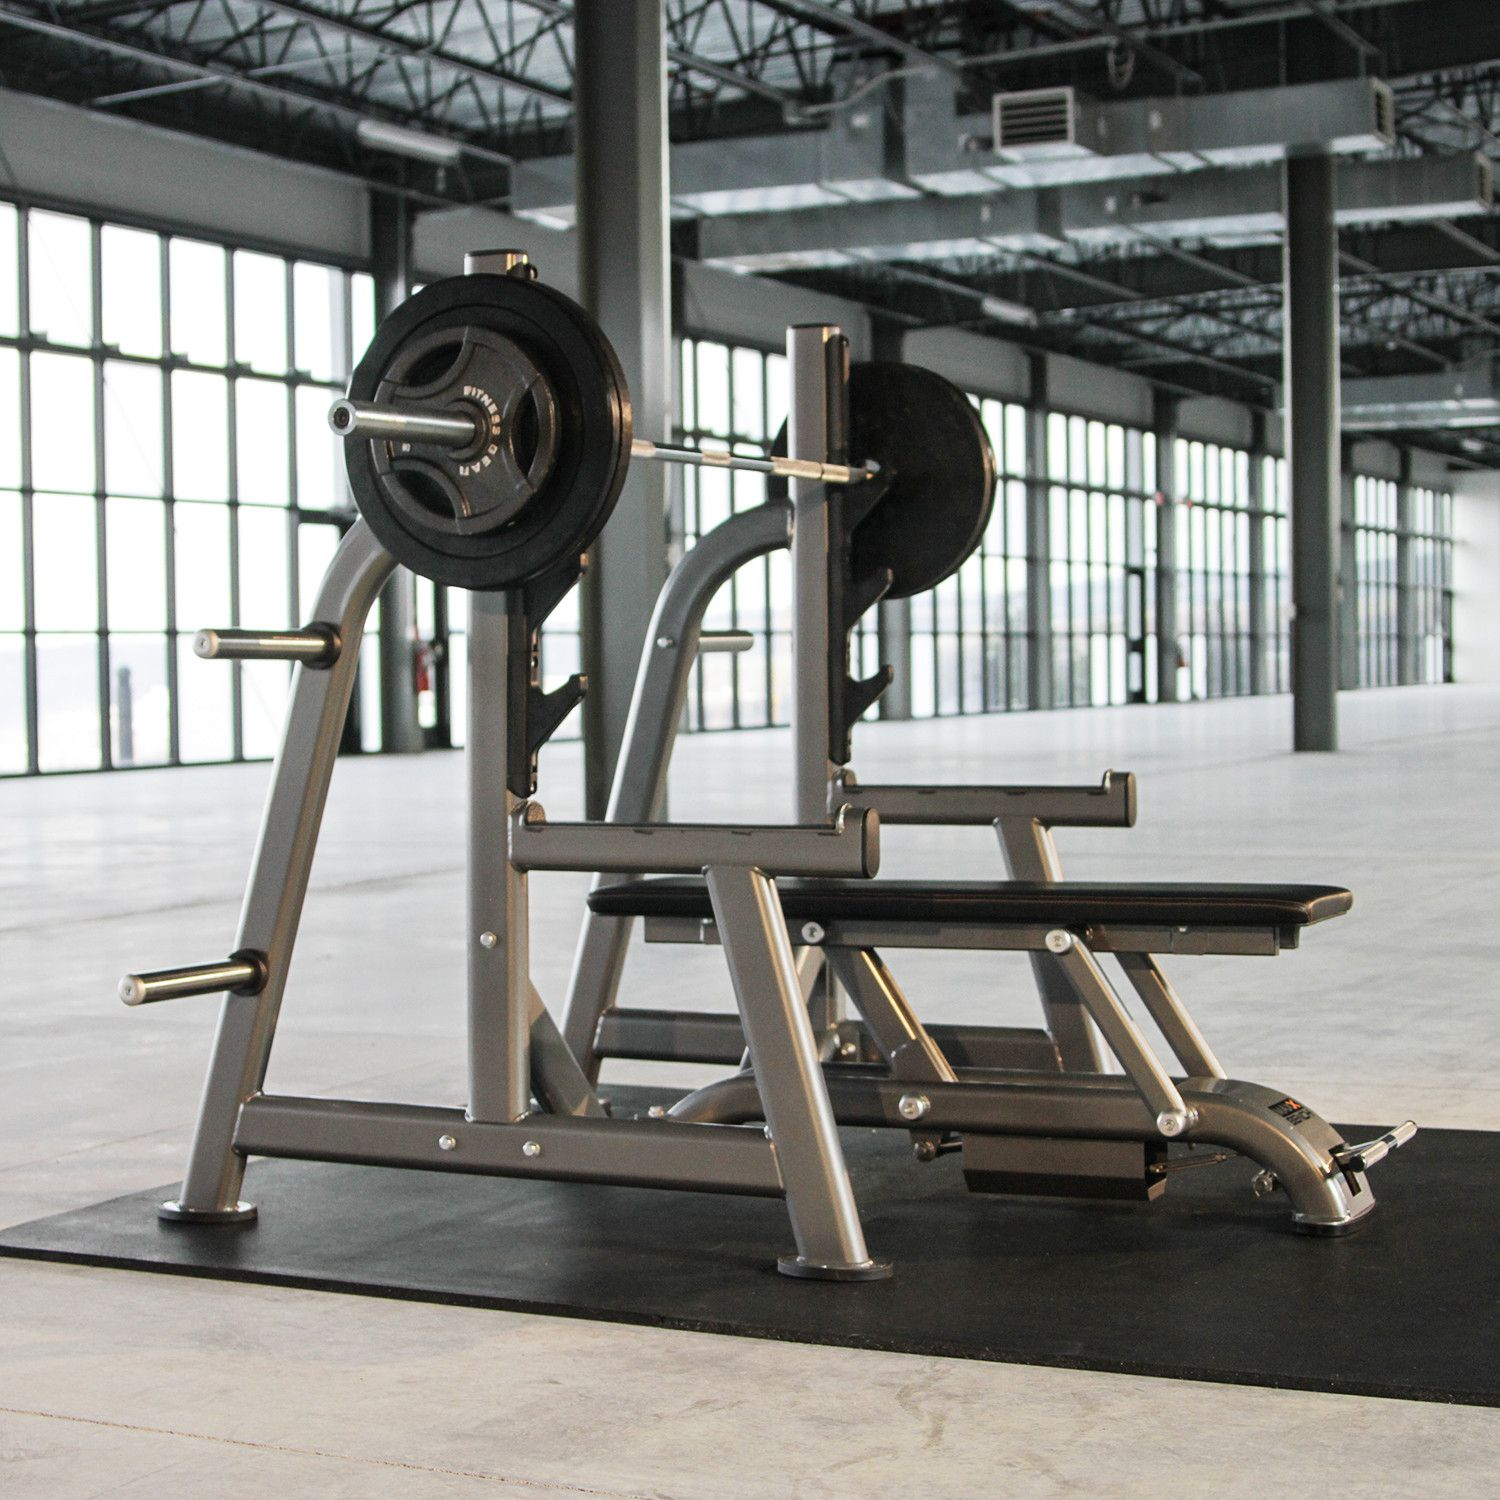 Amazing Maxx Olympic Flat Bench Rack At Home Gym Unemploymentrelief Wooden Chair Designs For Living Room Unemploymentrelieforg